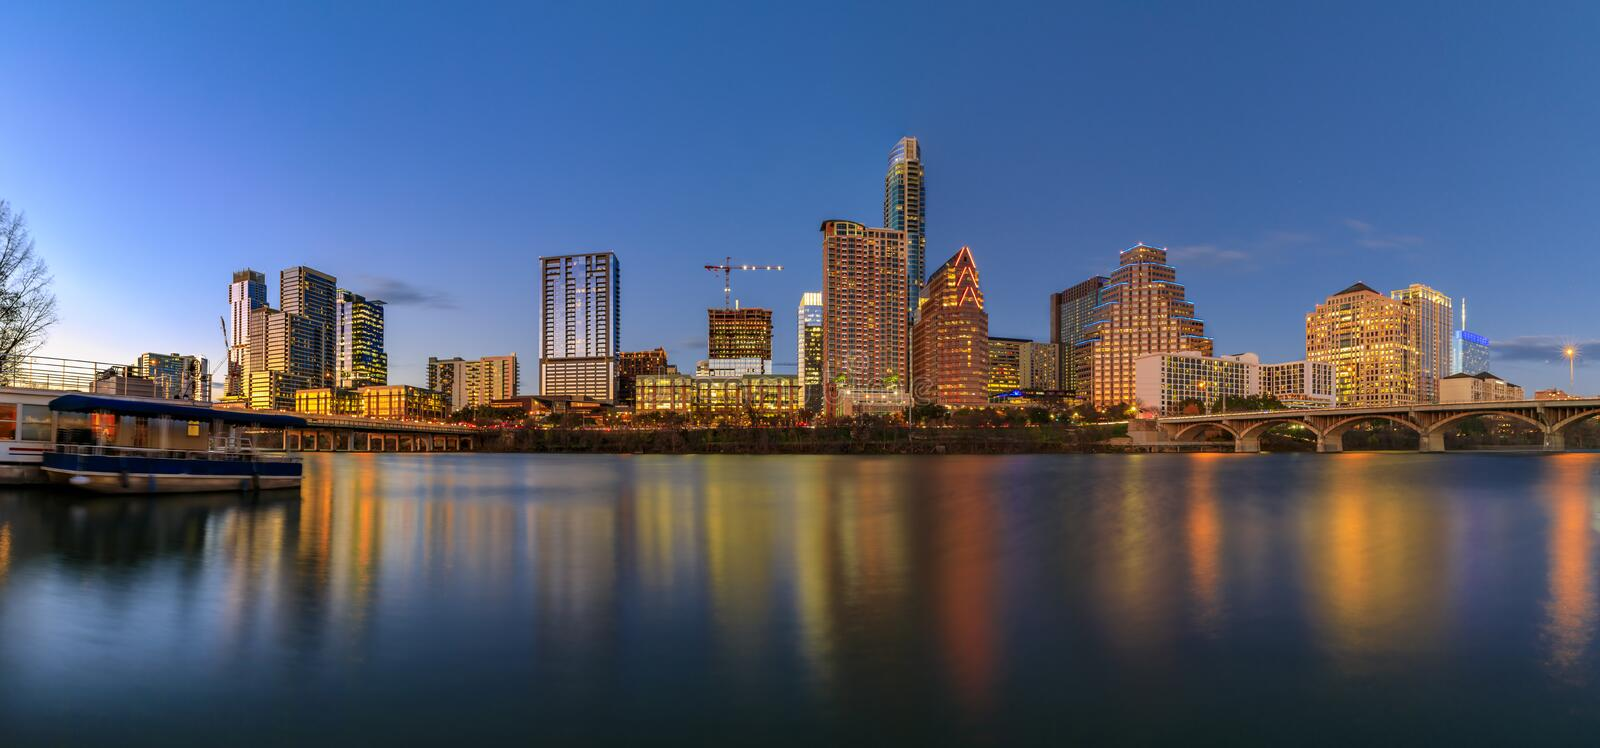 Panorama with downtown view across Lady Bird Lake or Town Lake on Colorado River at sunset golden hour, Austin Texas USA. Panorama with downtown high-rises royalty free stock images